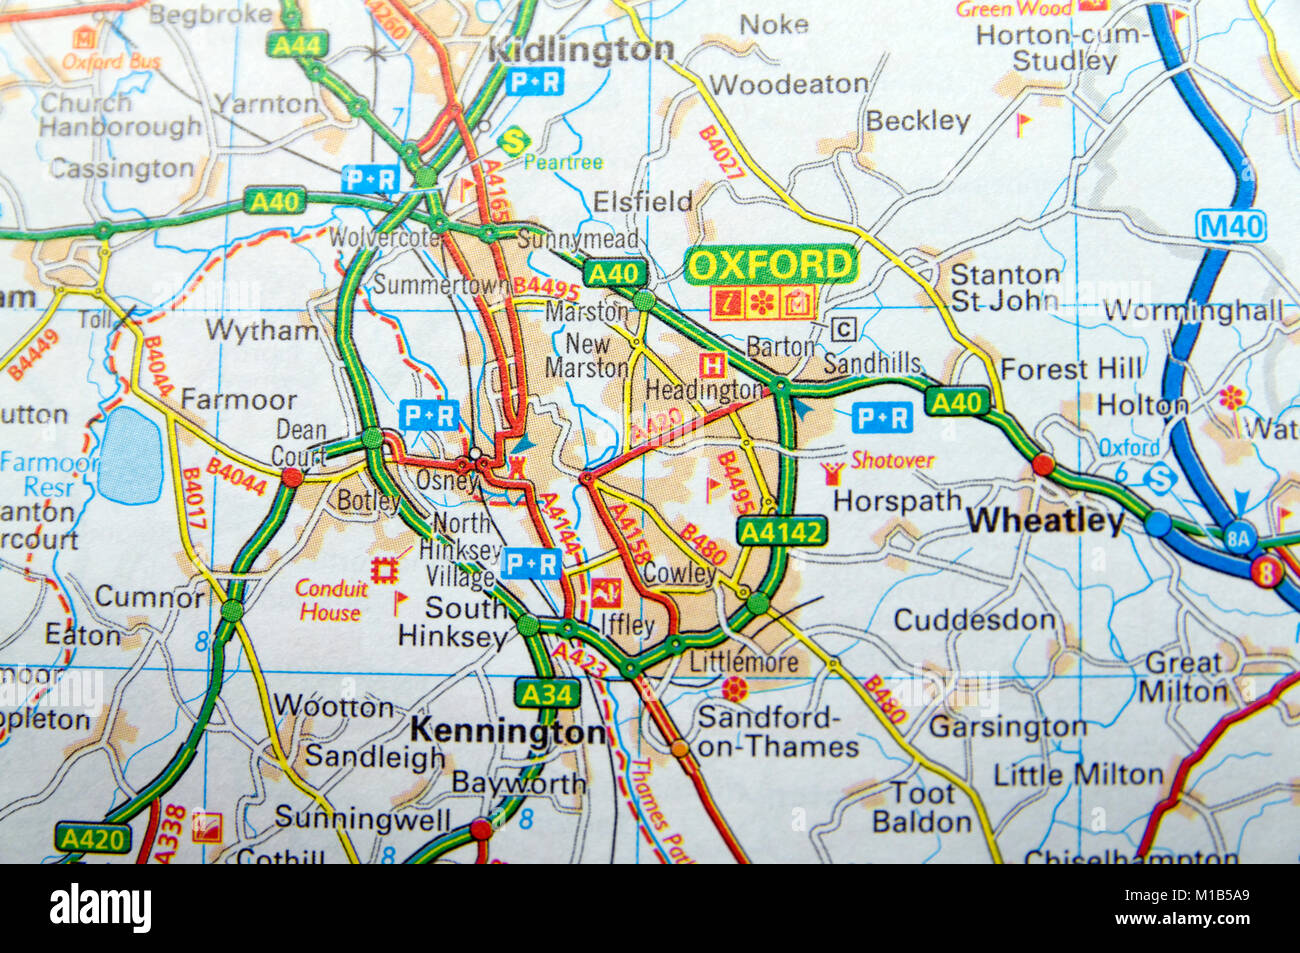 Road Map Of Oxford England Stock Photo 172964017 Alamy